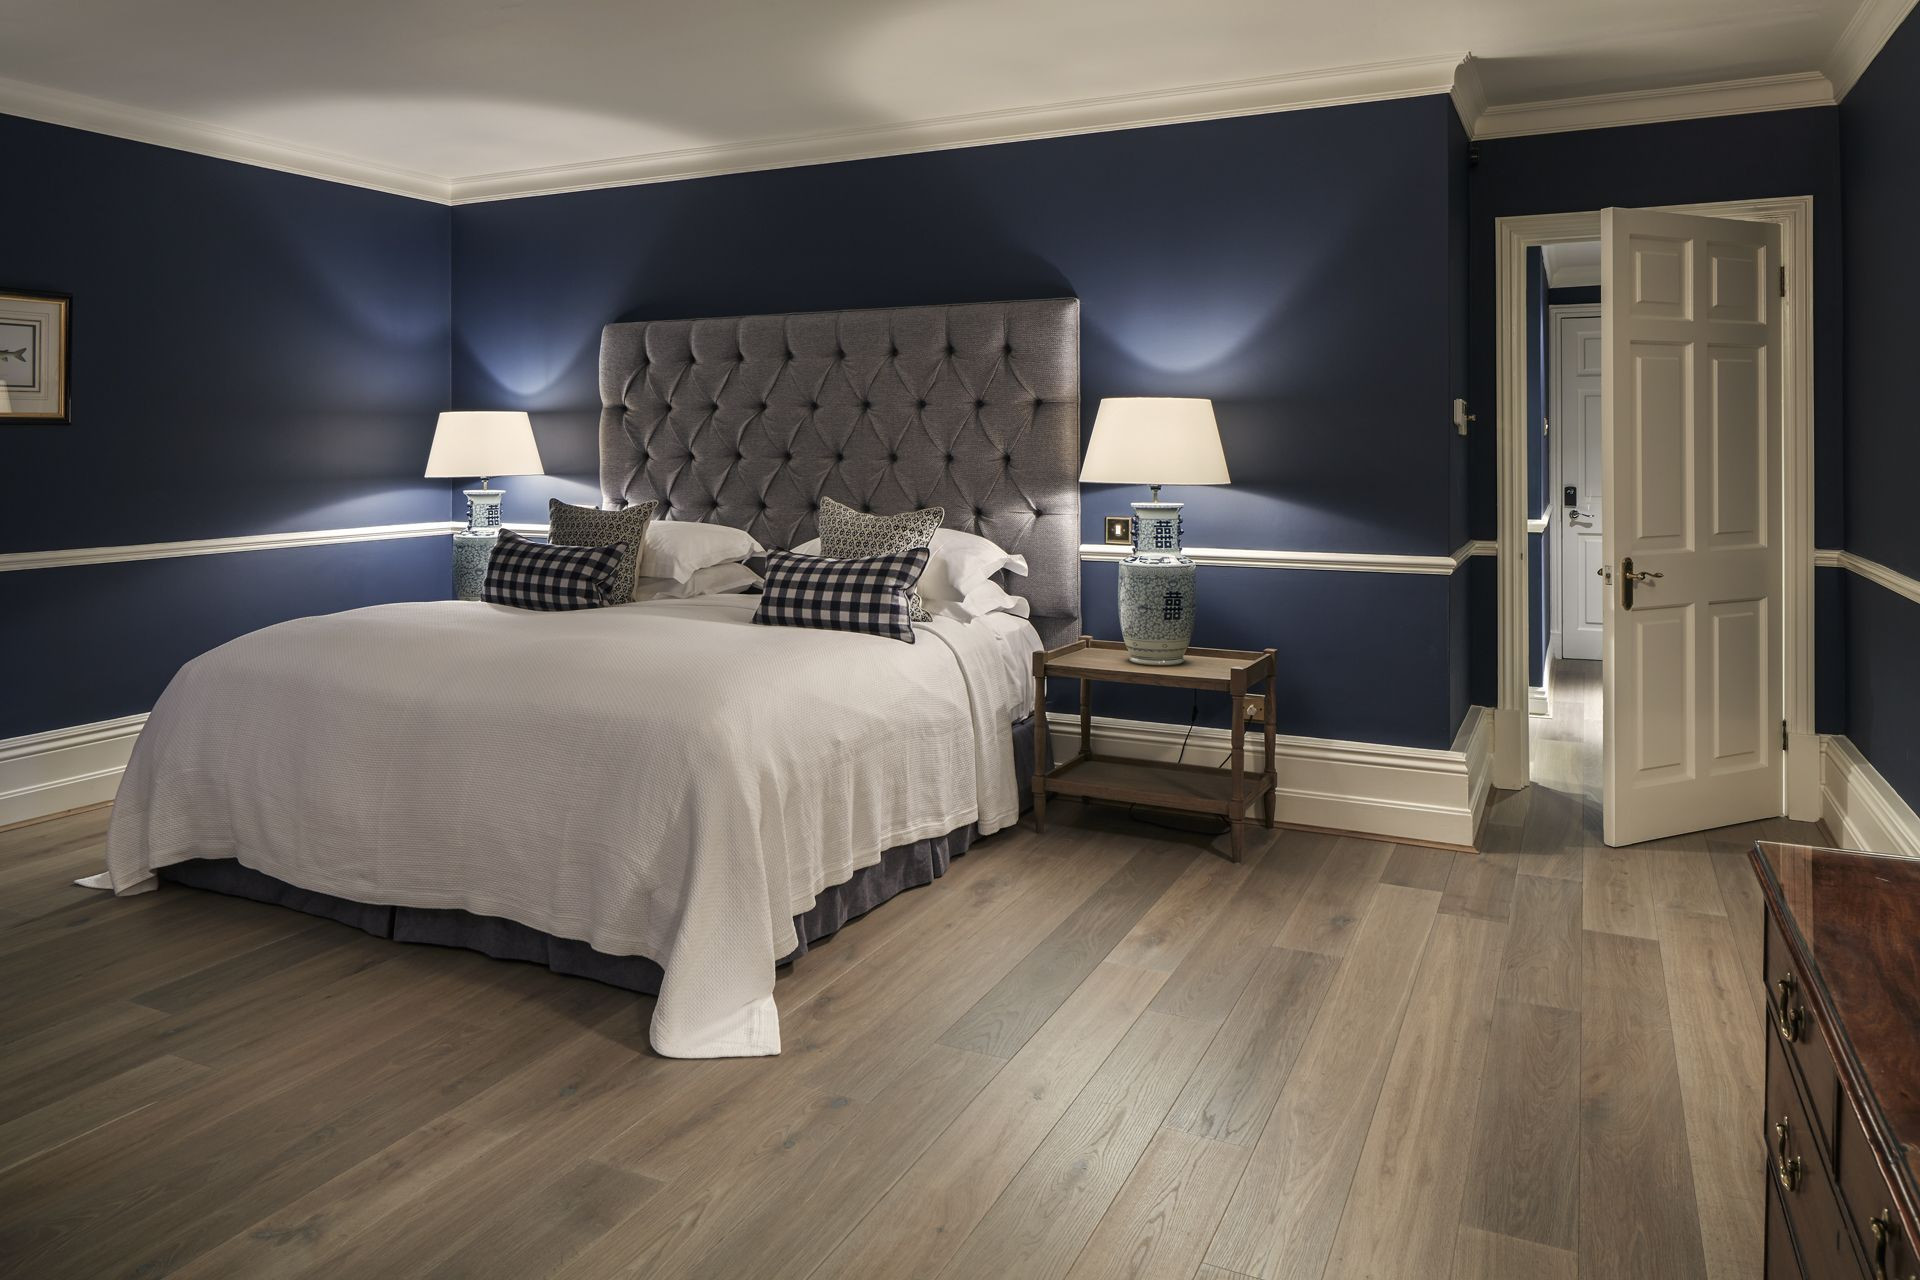 australian hardwood flooring types of havwoods hw926 hw927 fendi chewton glen hotel hotels pinterest in havwoods hw926 hw927 fendi chewton glen hotel